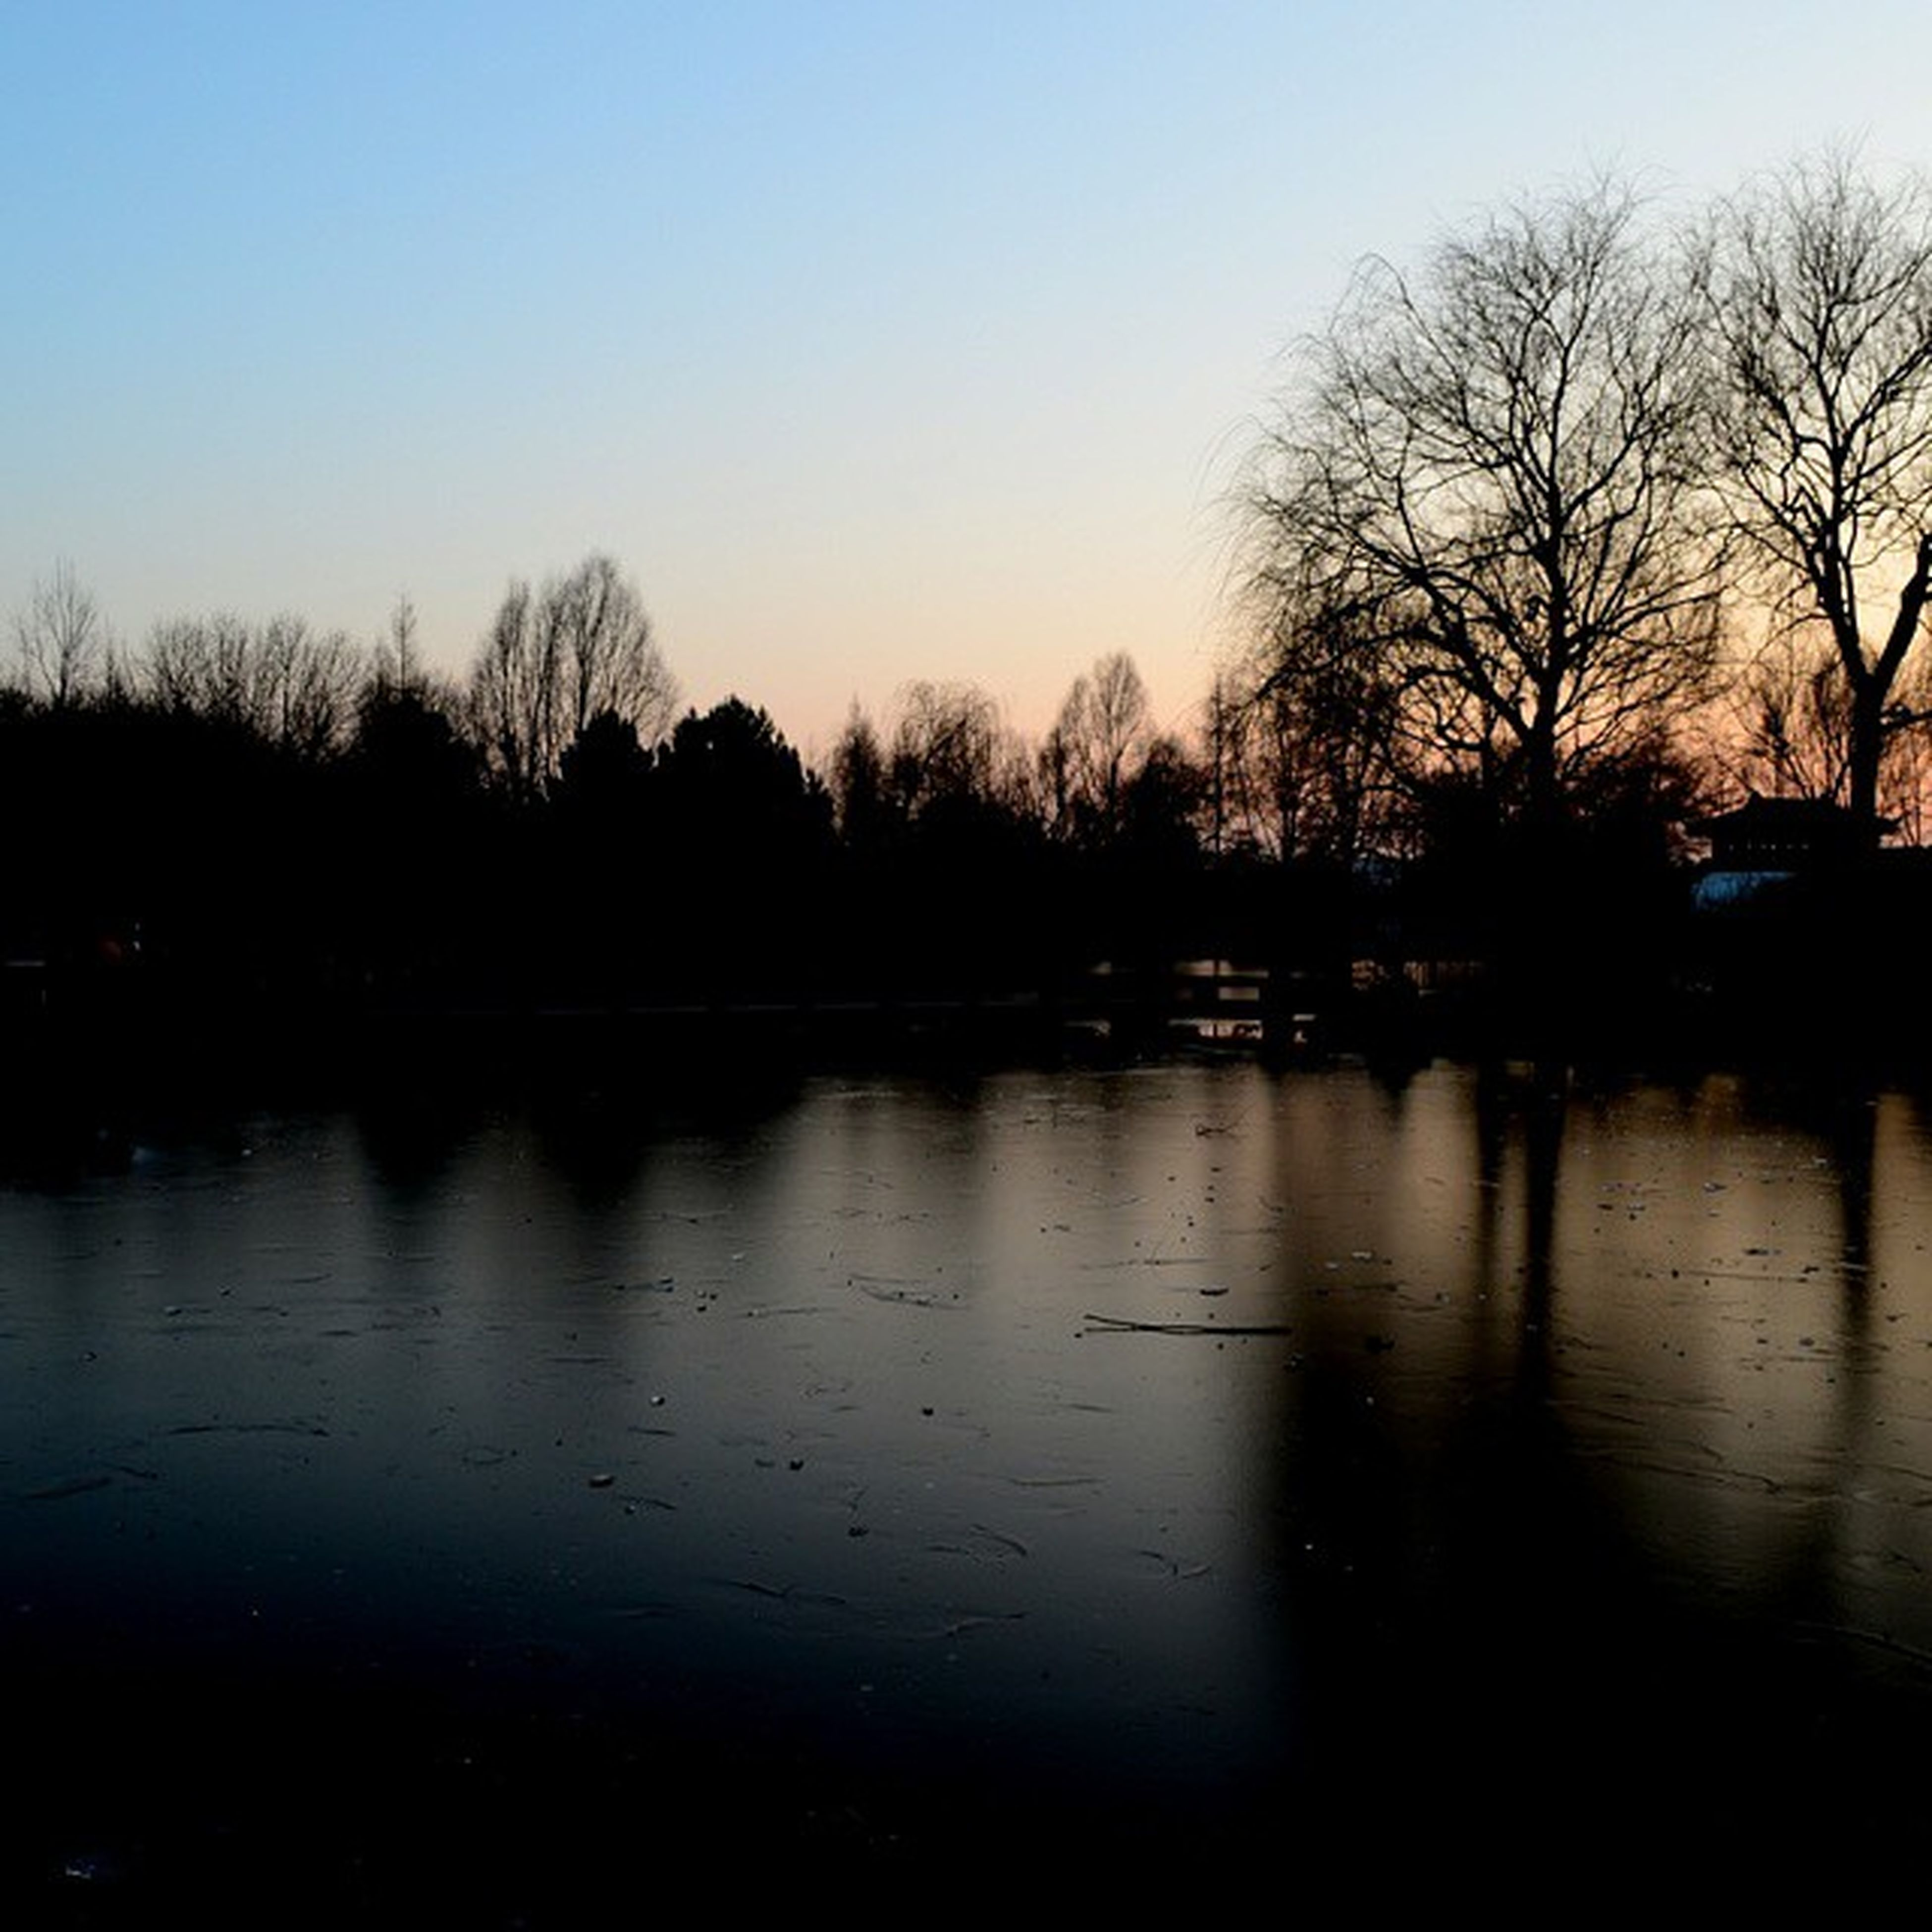 silhouette, water, reflection, tree, clear sky, sunset, lake, bare tree, tranquility, tranquil scene, scenics, dusk, beauty in nature, nature, sky, copy space, waterfront, river, idyllic, outdoors